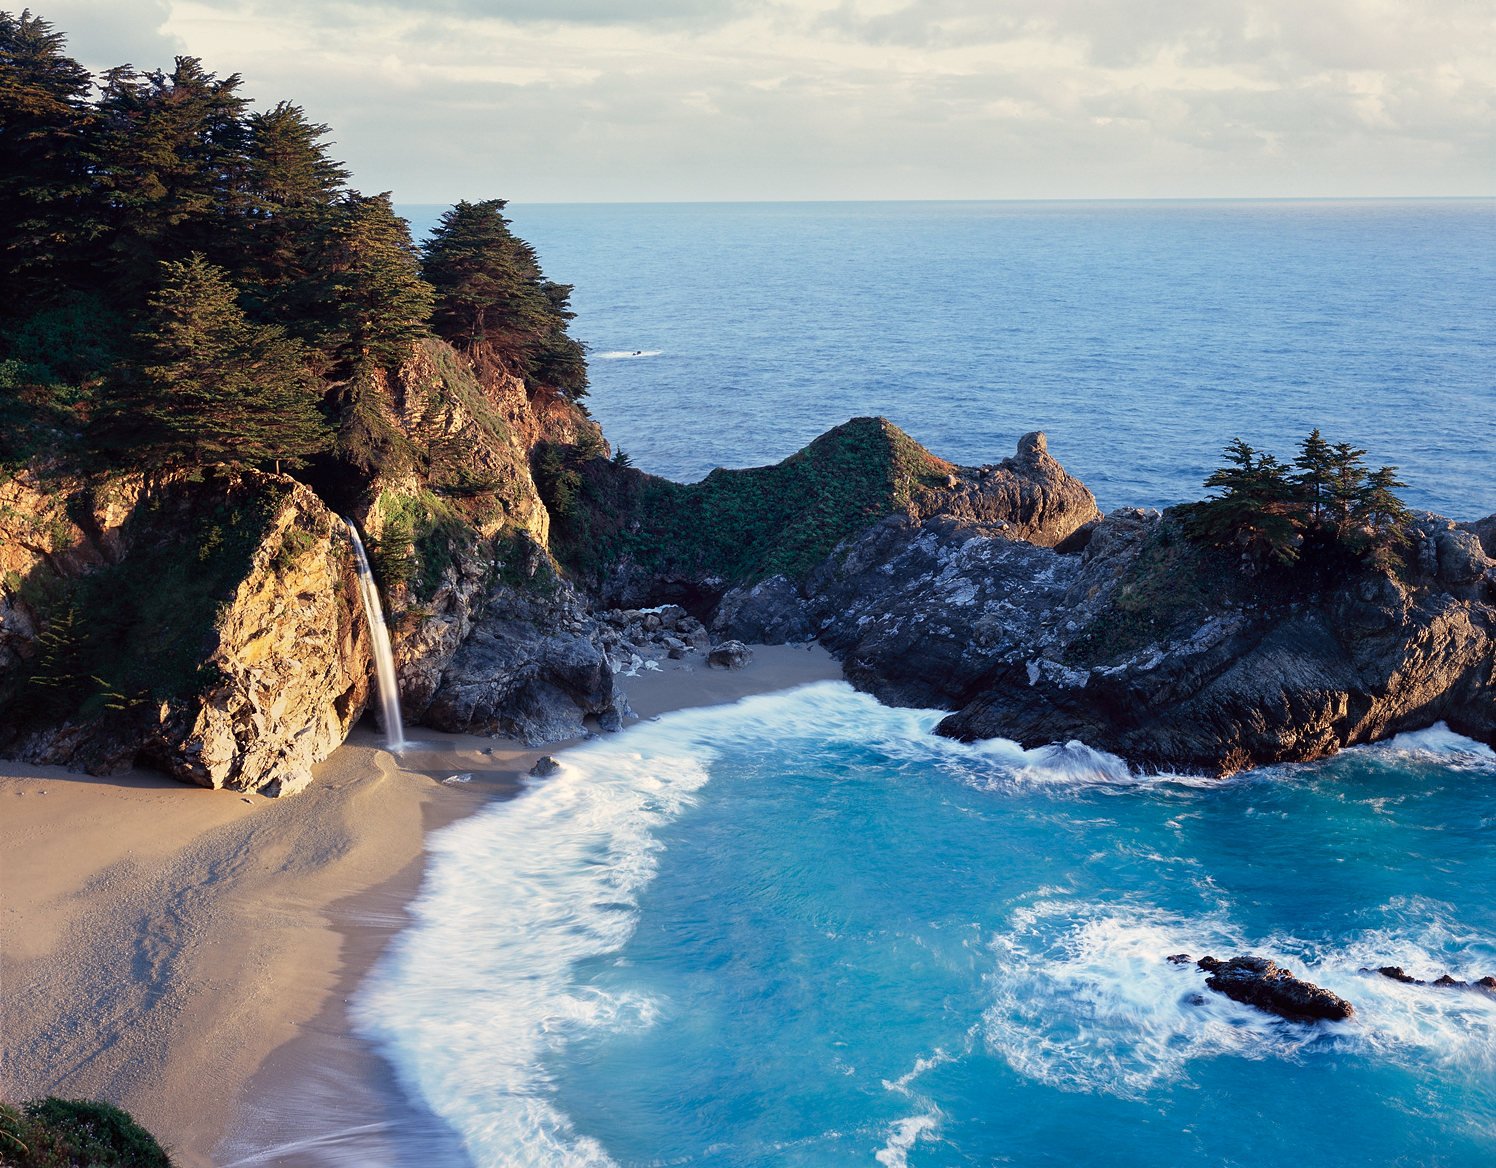 McWay Falls, Julia Pfeiffer Burns State Park, Big Sur, California